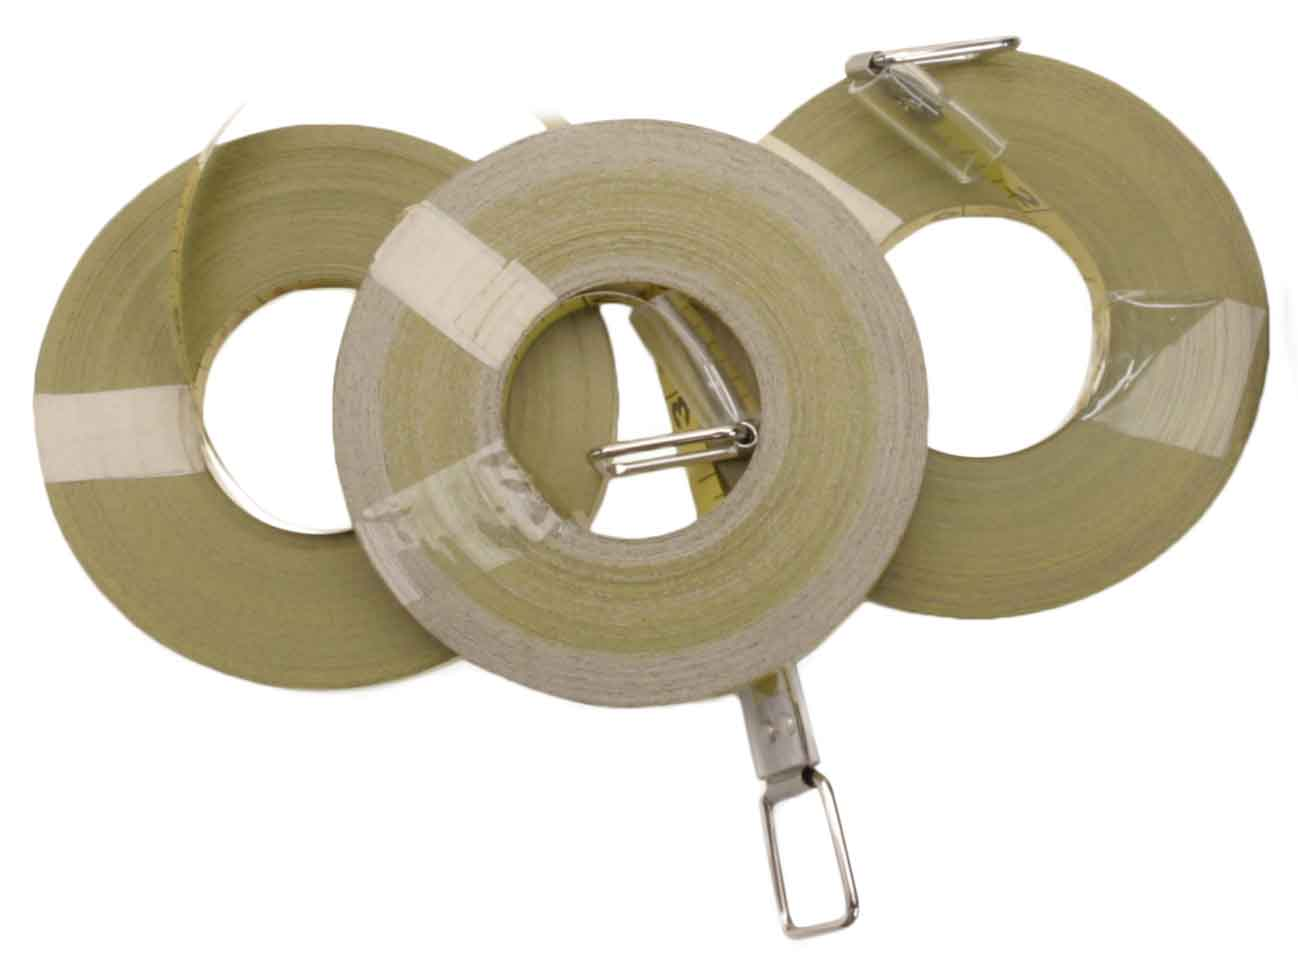 TAP 965DC - 02) Spencer 965DC - 50ft Combination Tape Refill